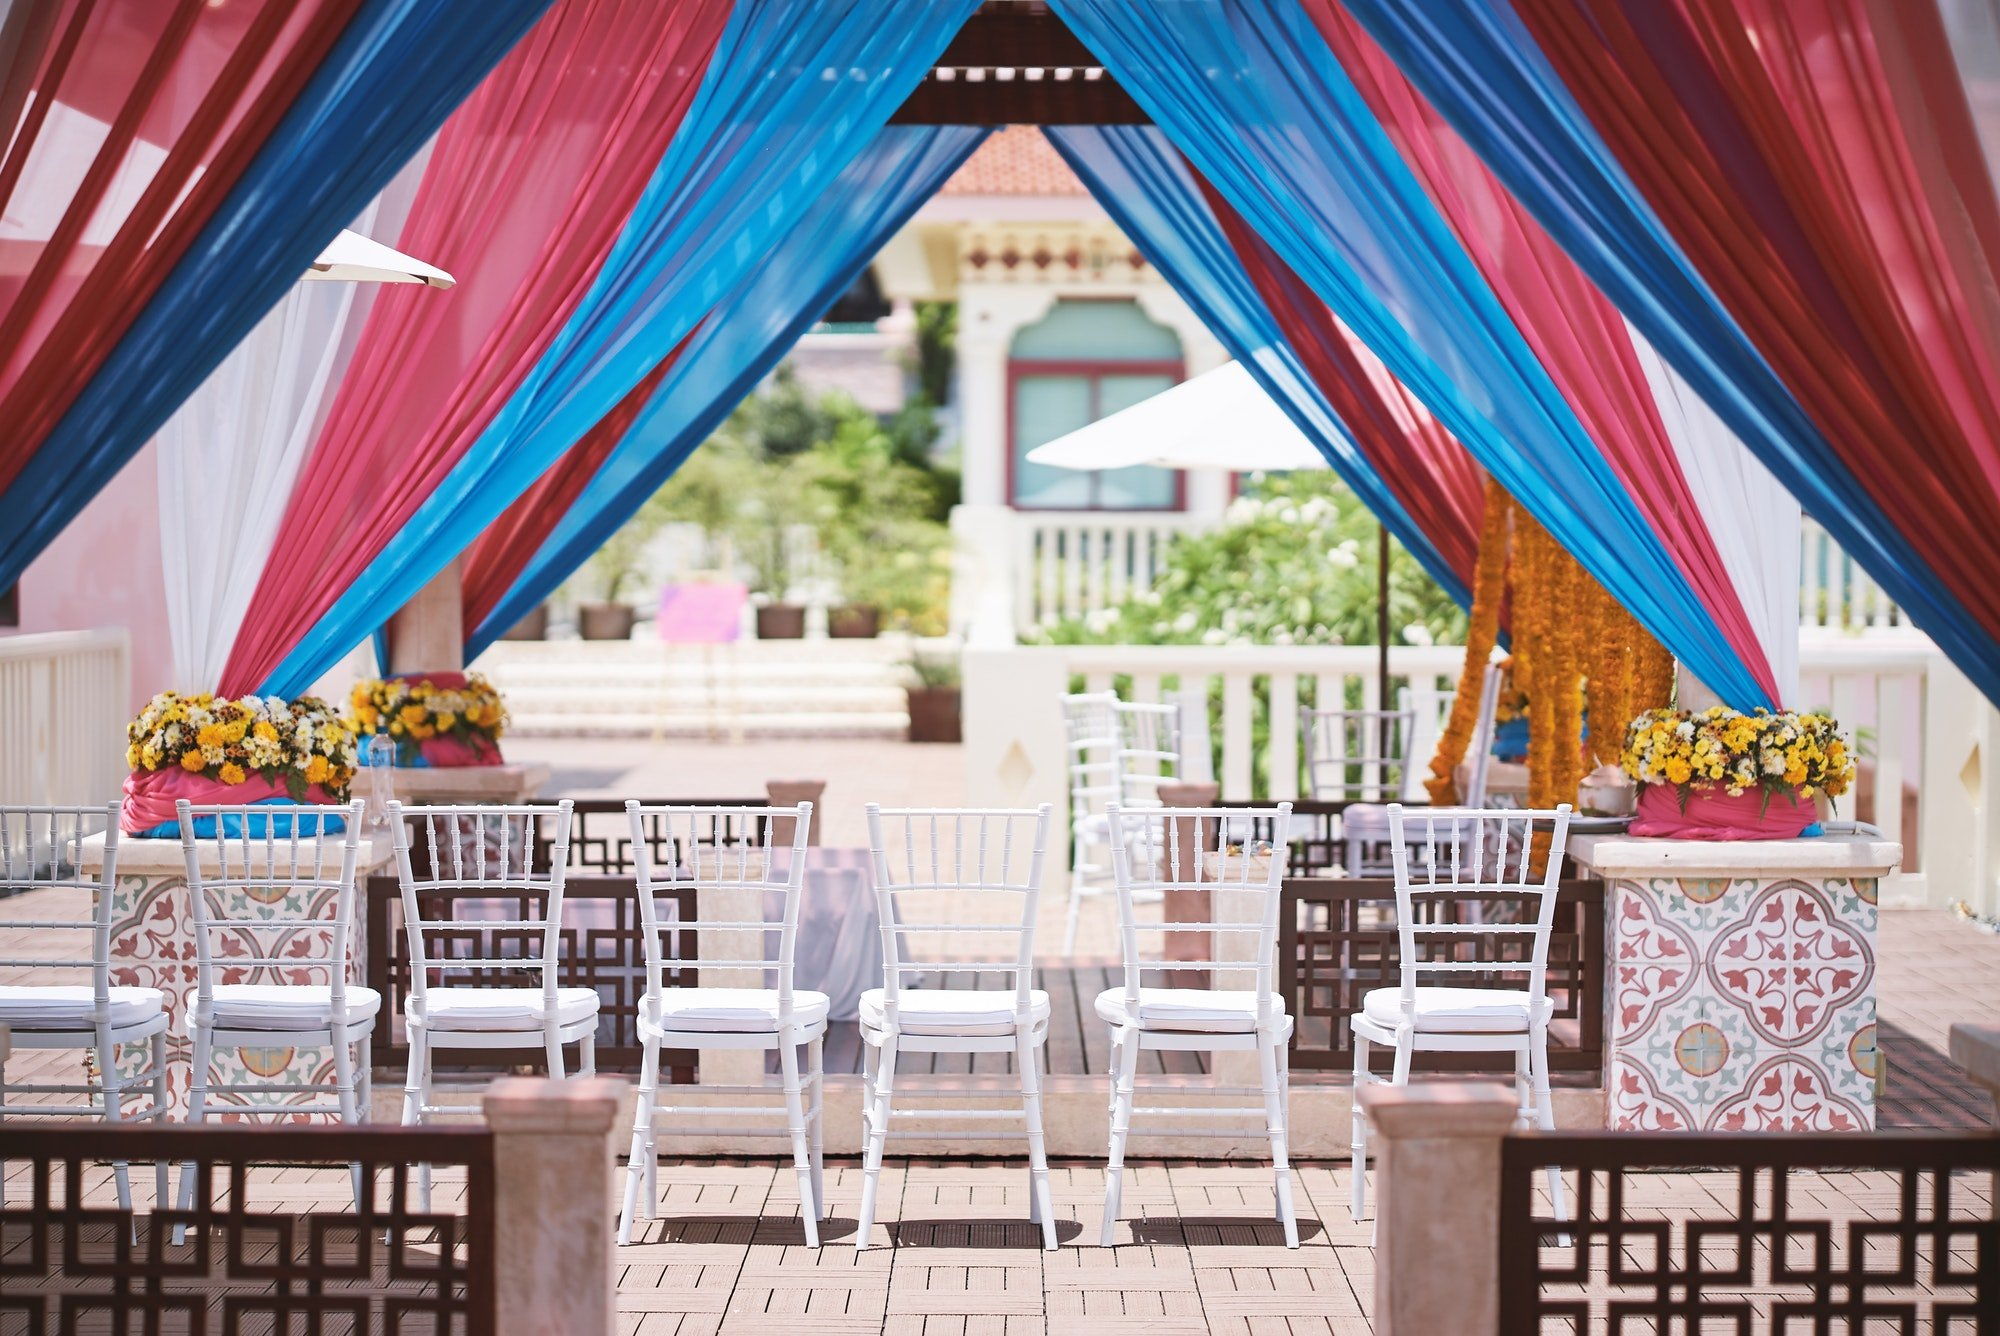 Indian traditional ceremony venue decoration with colorful soft fabric for thread ceremony